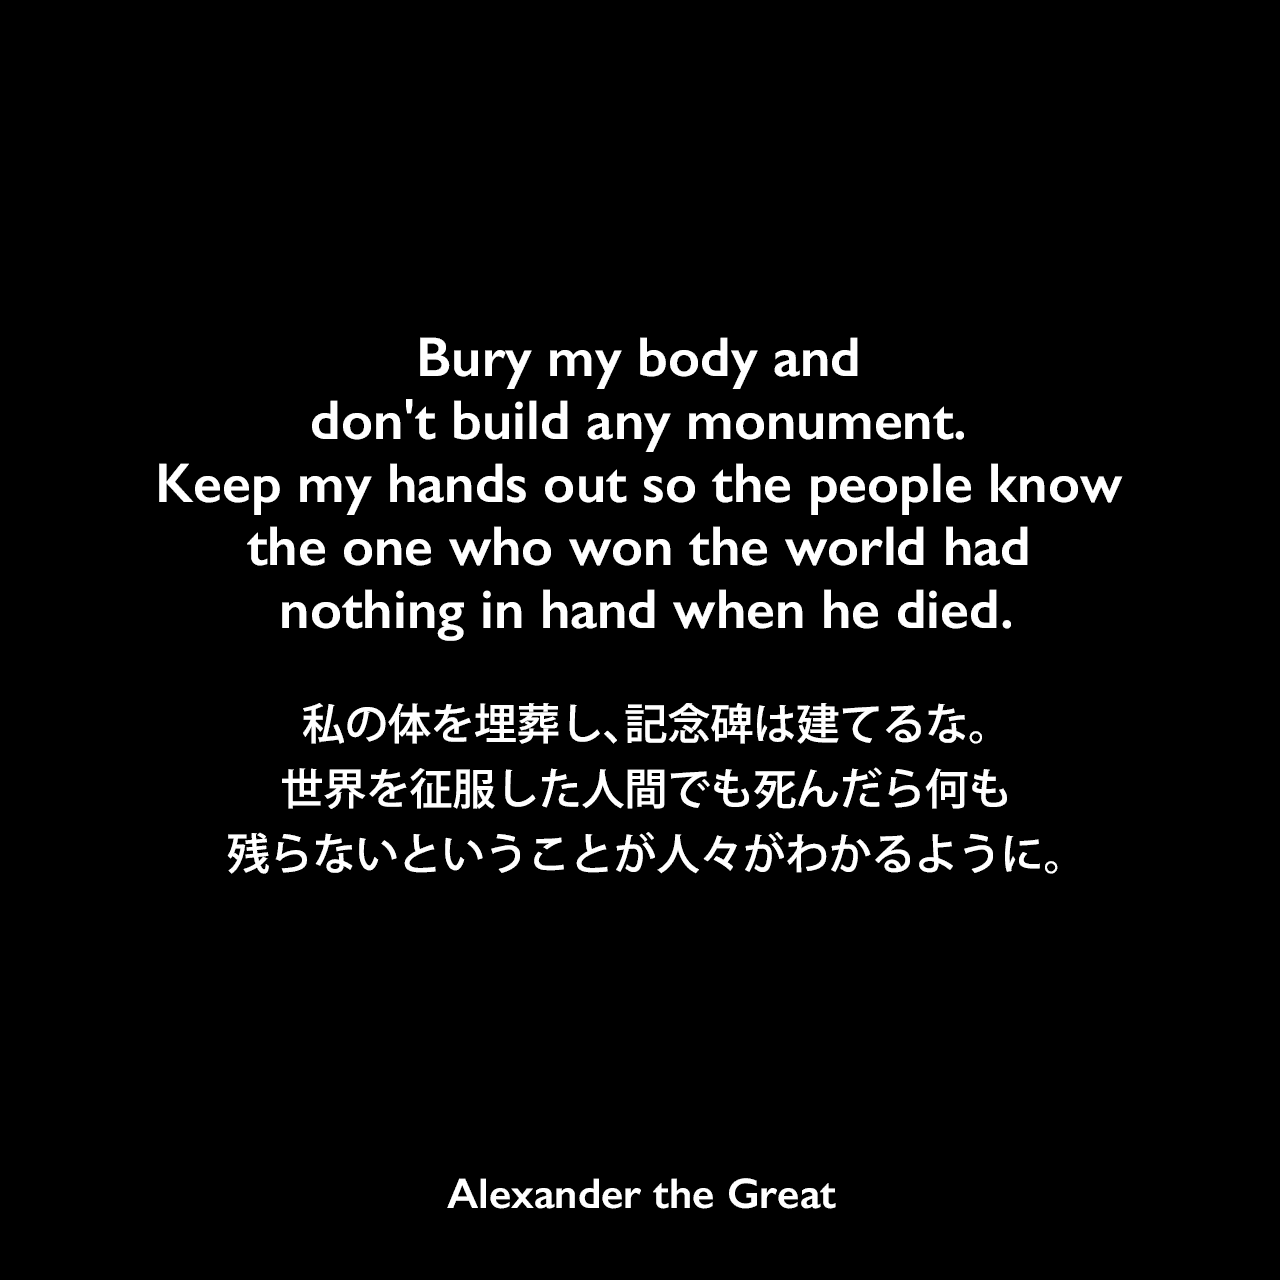 Bury my body and don't build any monument. Keep my hands out so the people know the one who won the world had nothing in hand when he died.私の体を埋葬し、記念碑は建てるな。世界を征服した人間でも死んだら何も残らないということが人々がわかるように。Alexander the Great